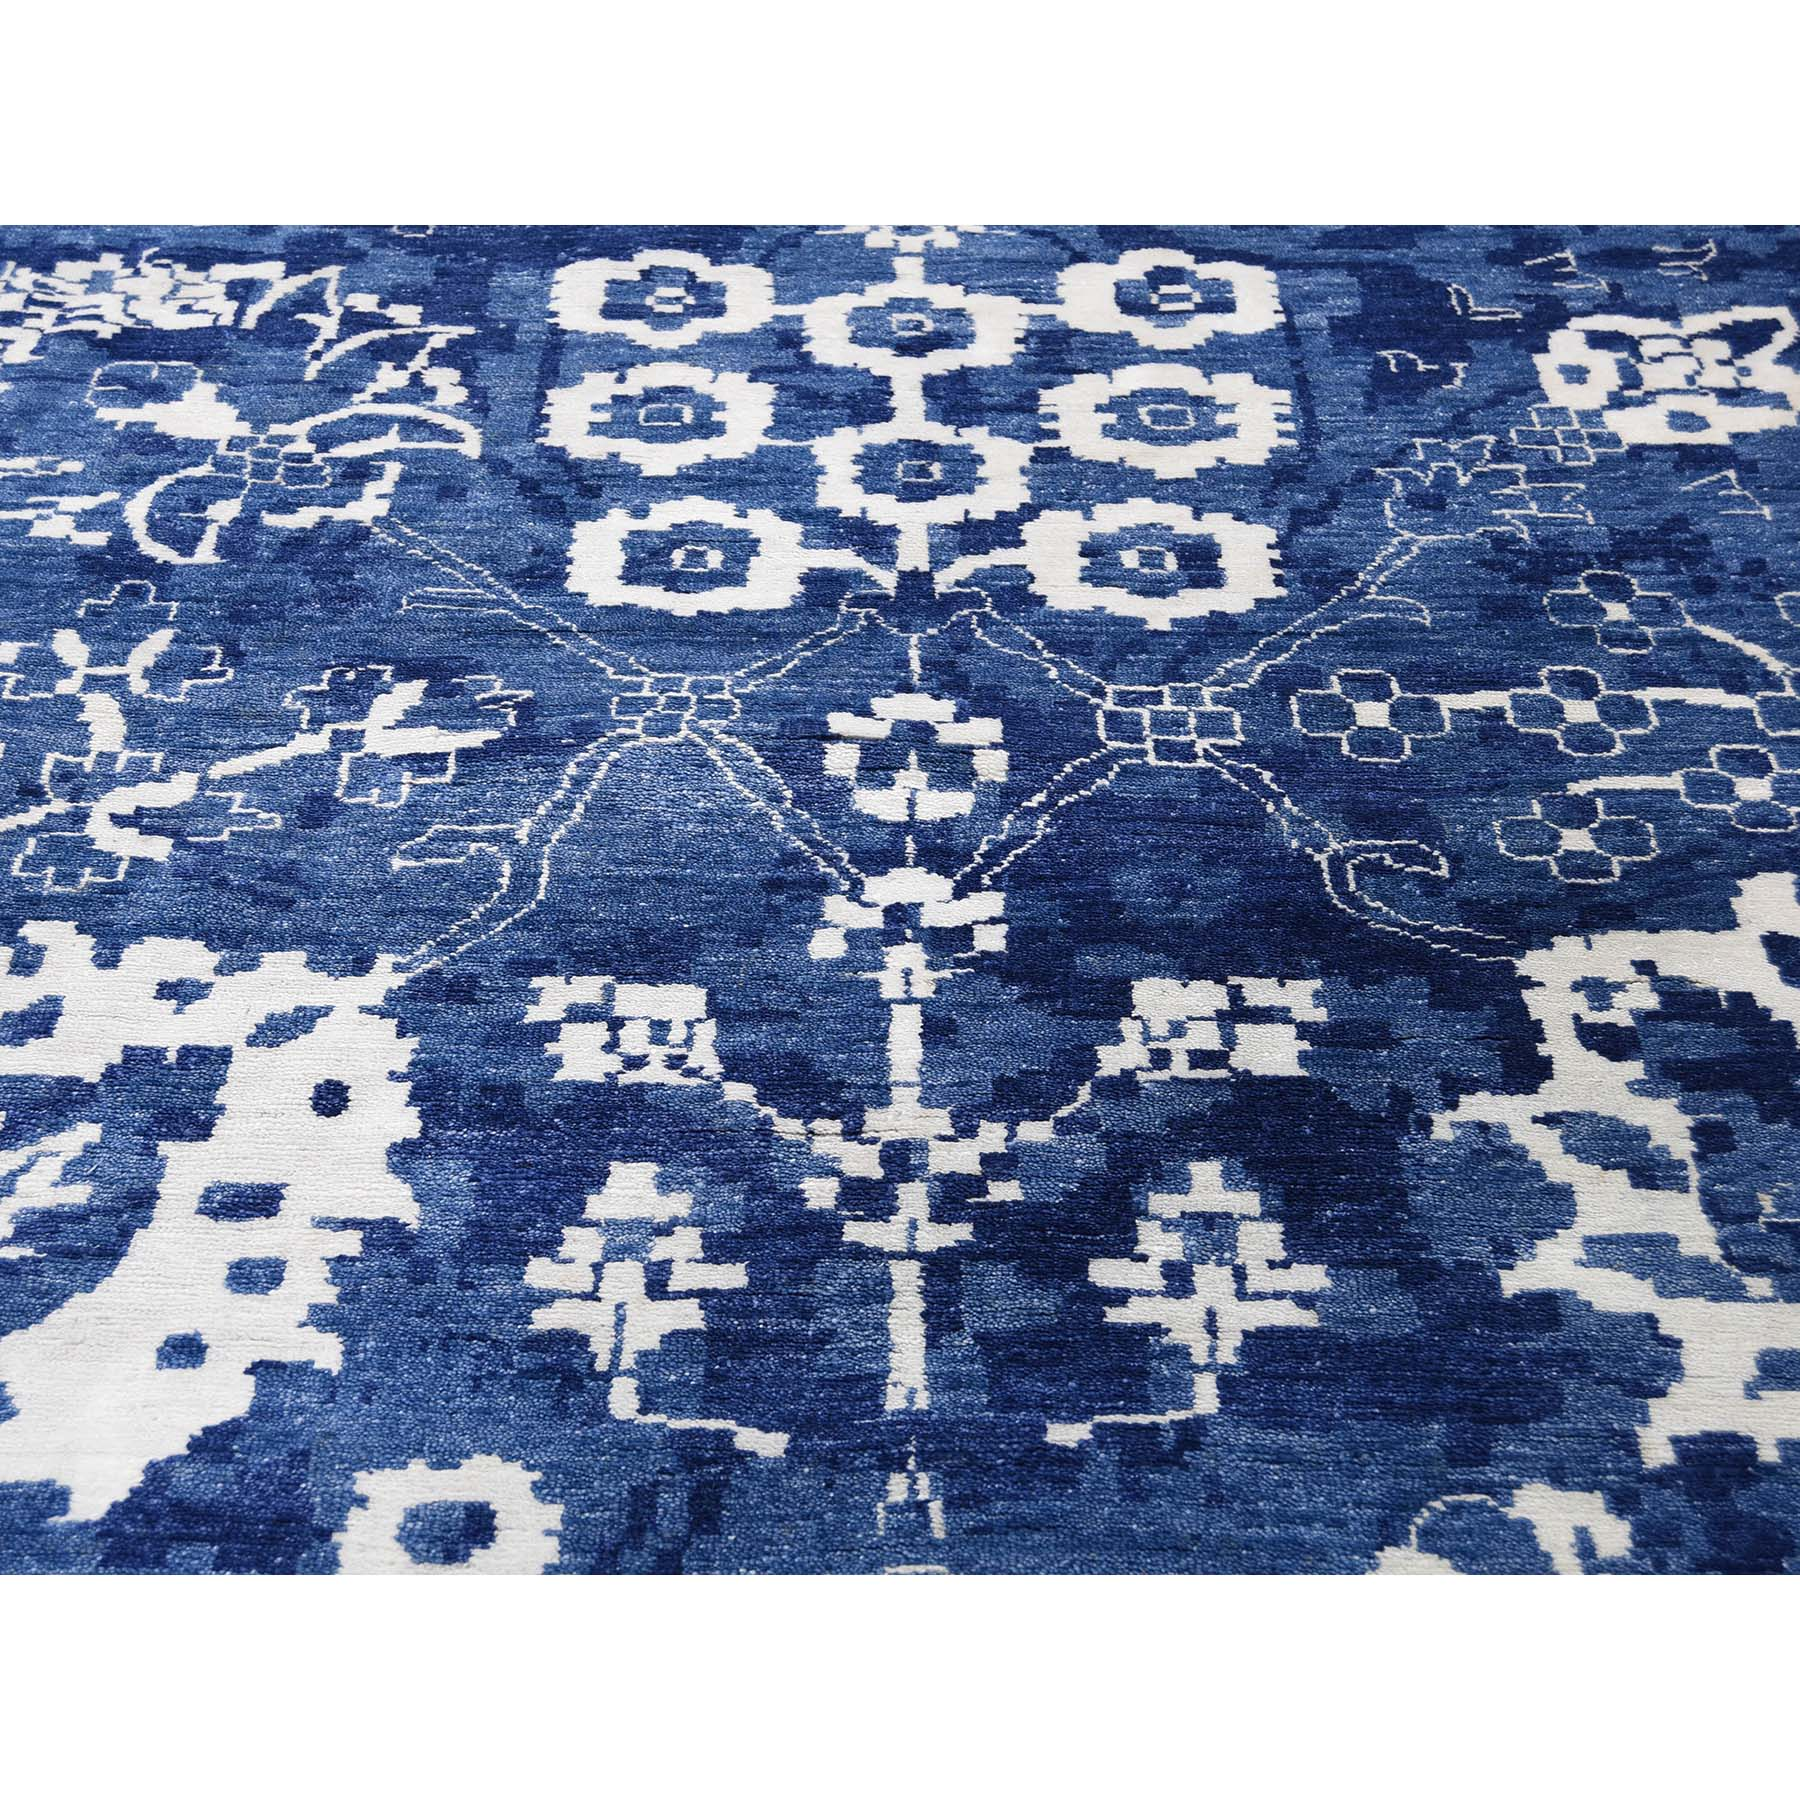 12-x15-2  Hand-Knotted Wool and Silk Tone on Tone Tabriz Oversize Oriental Rug